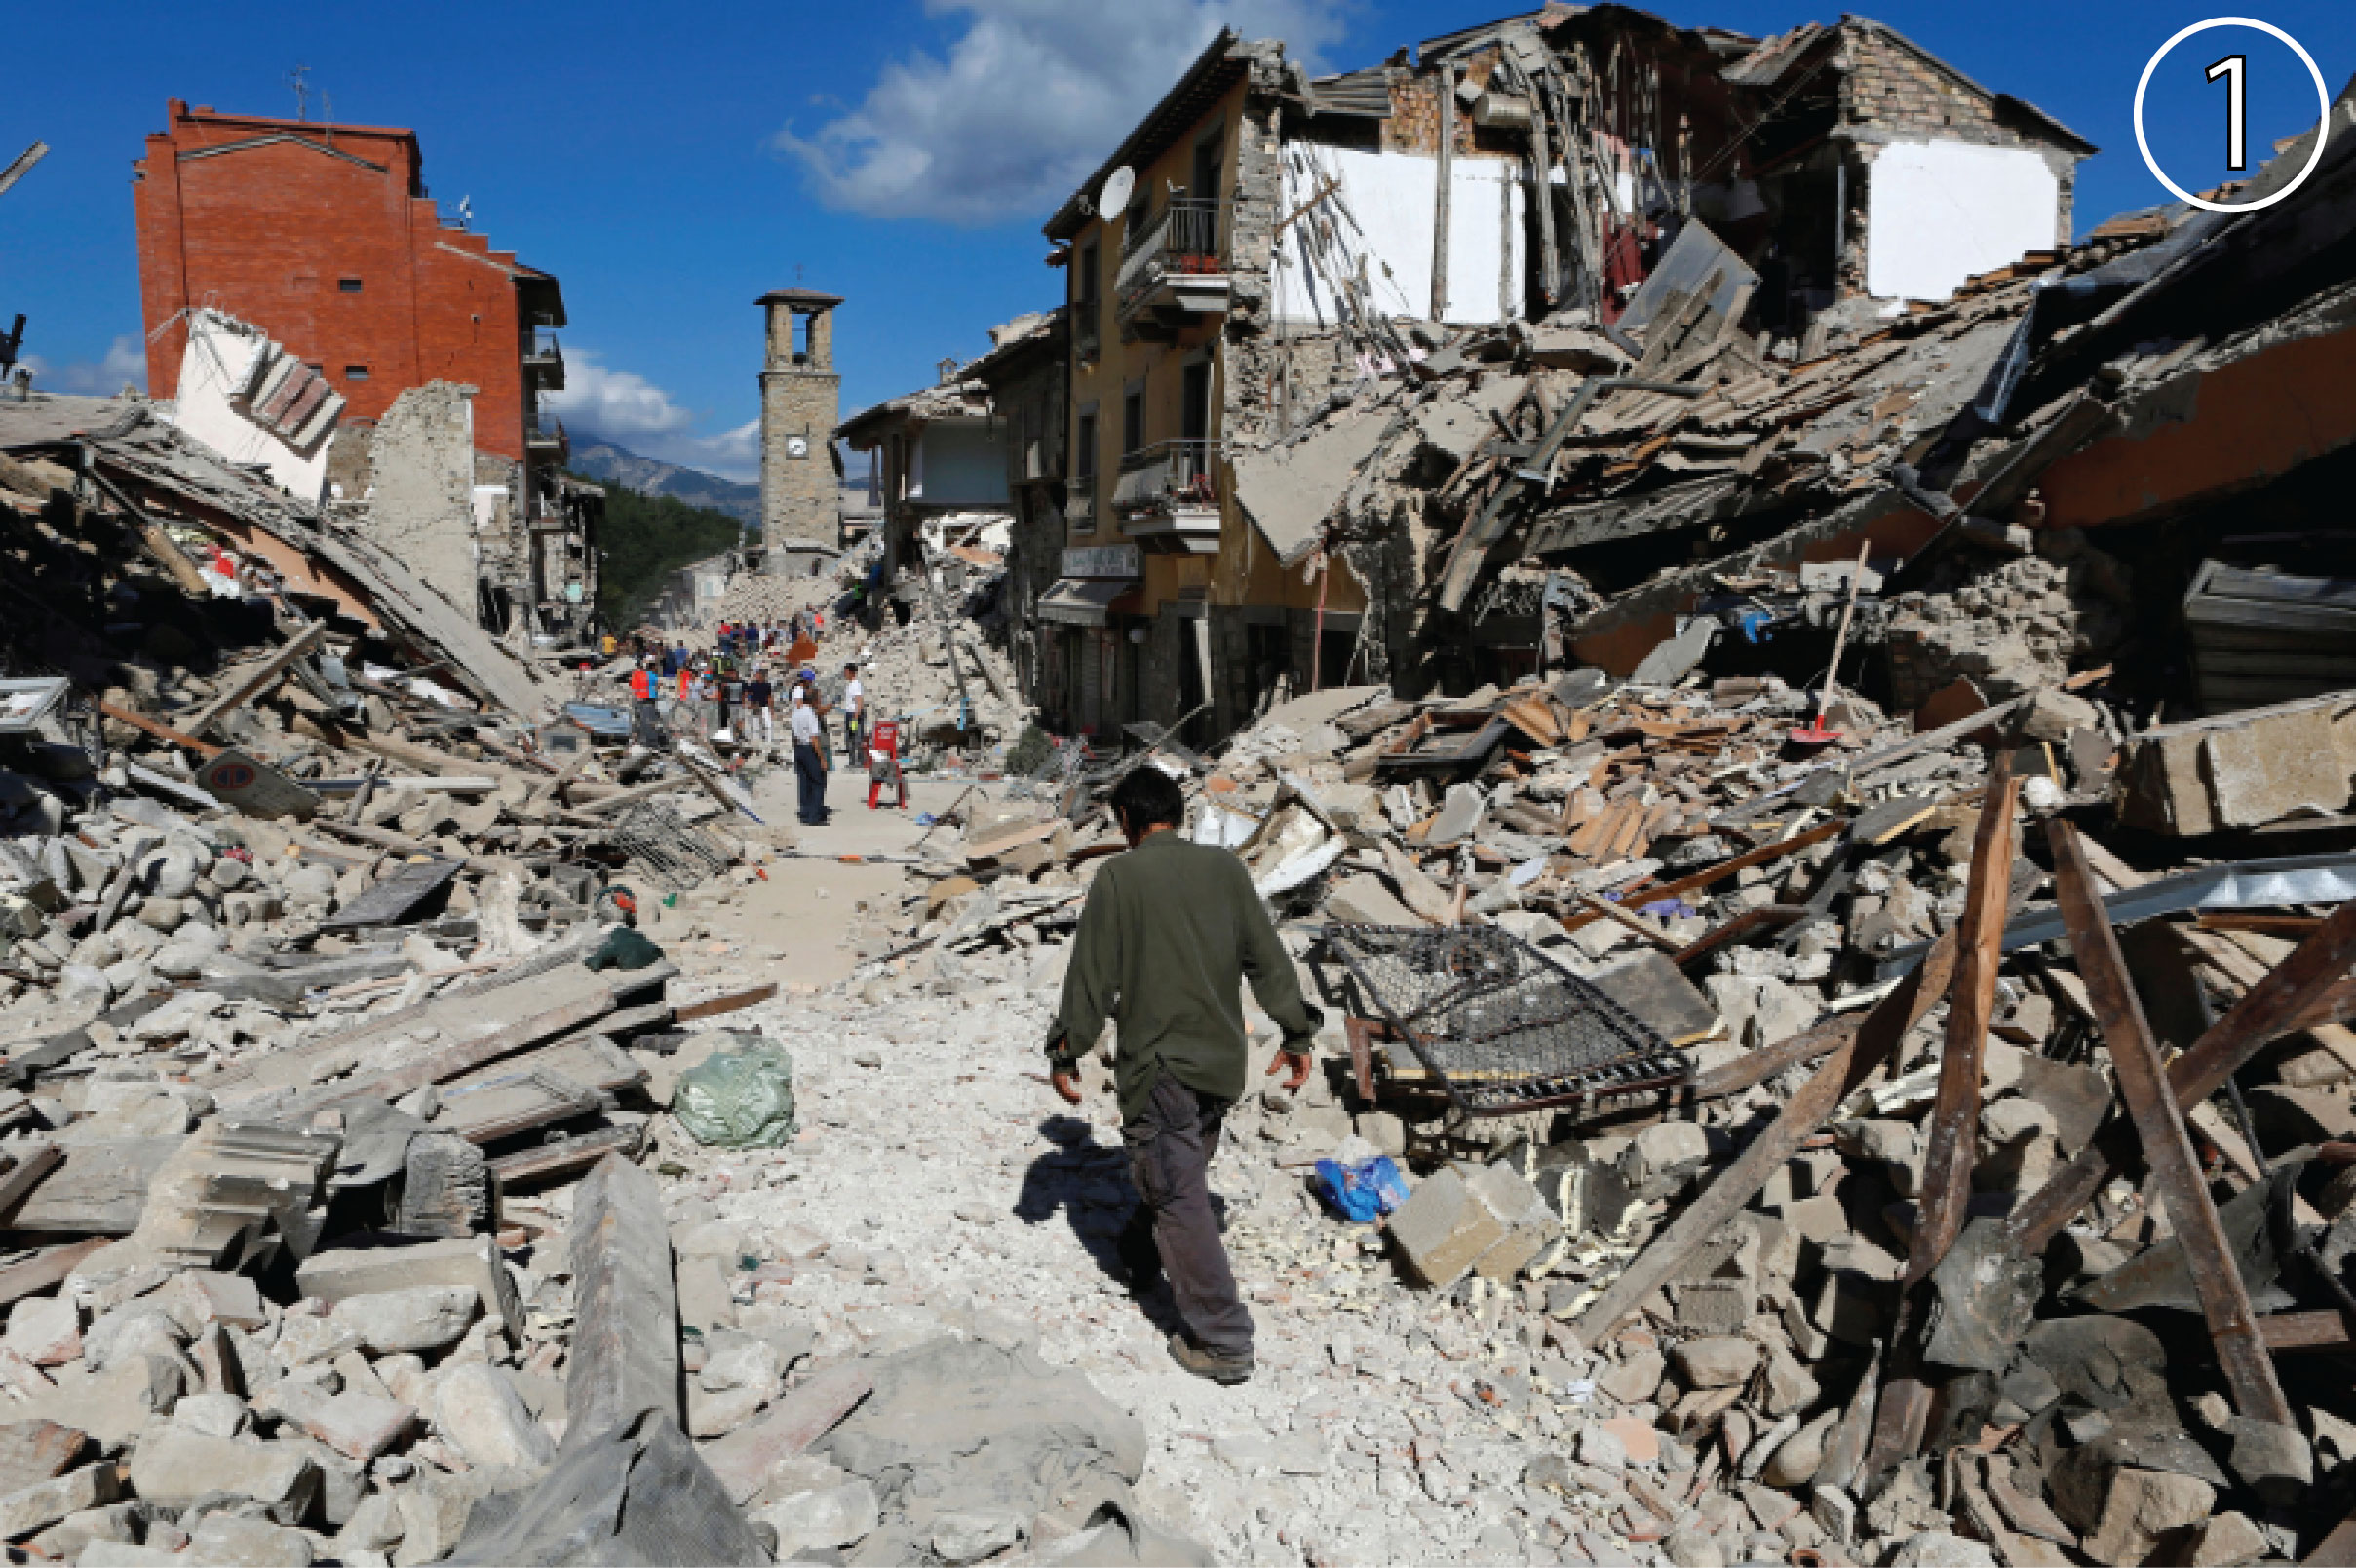 Damage from of the Italy earthquake in Amatrice.